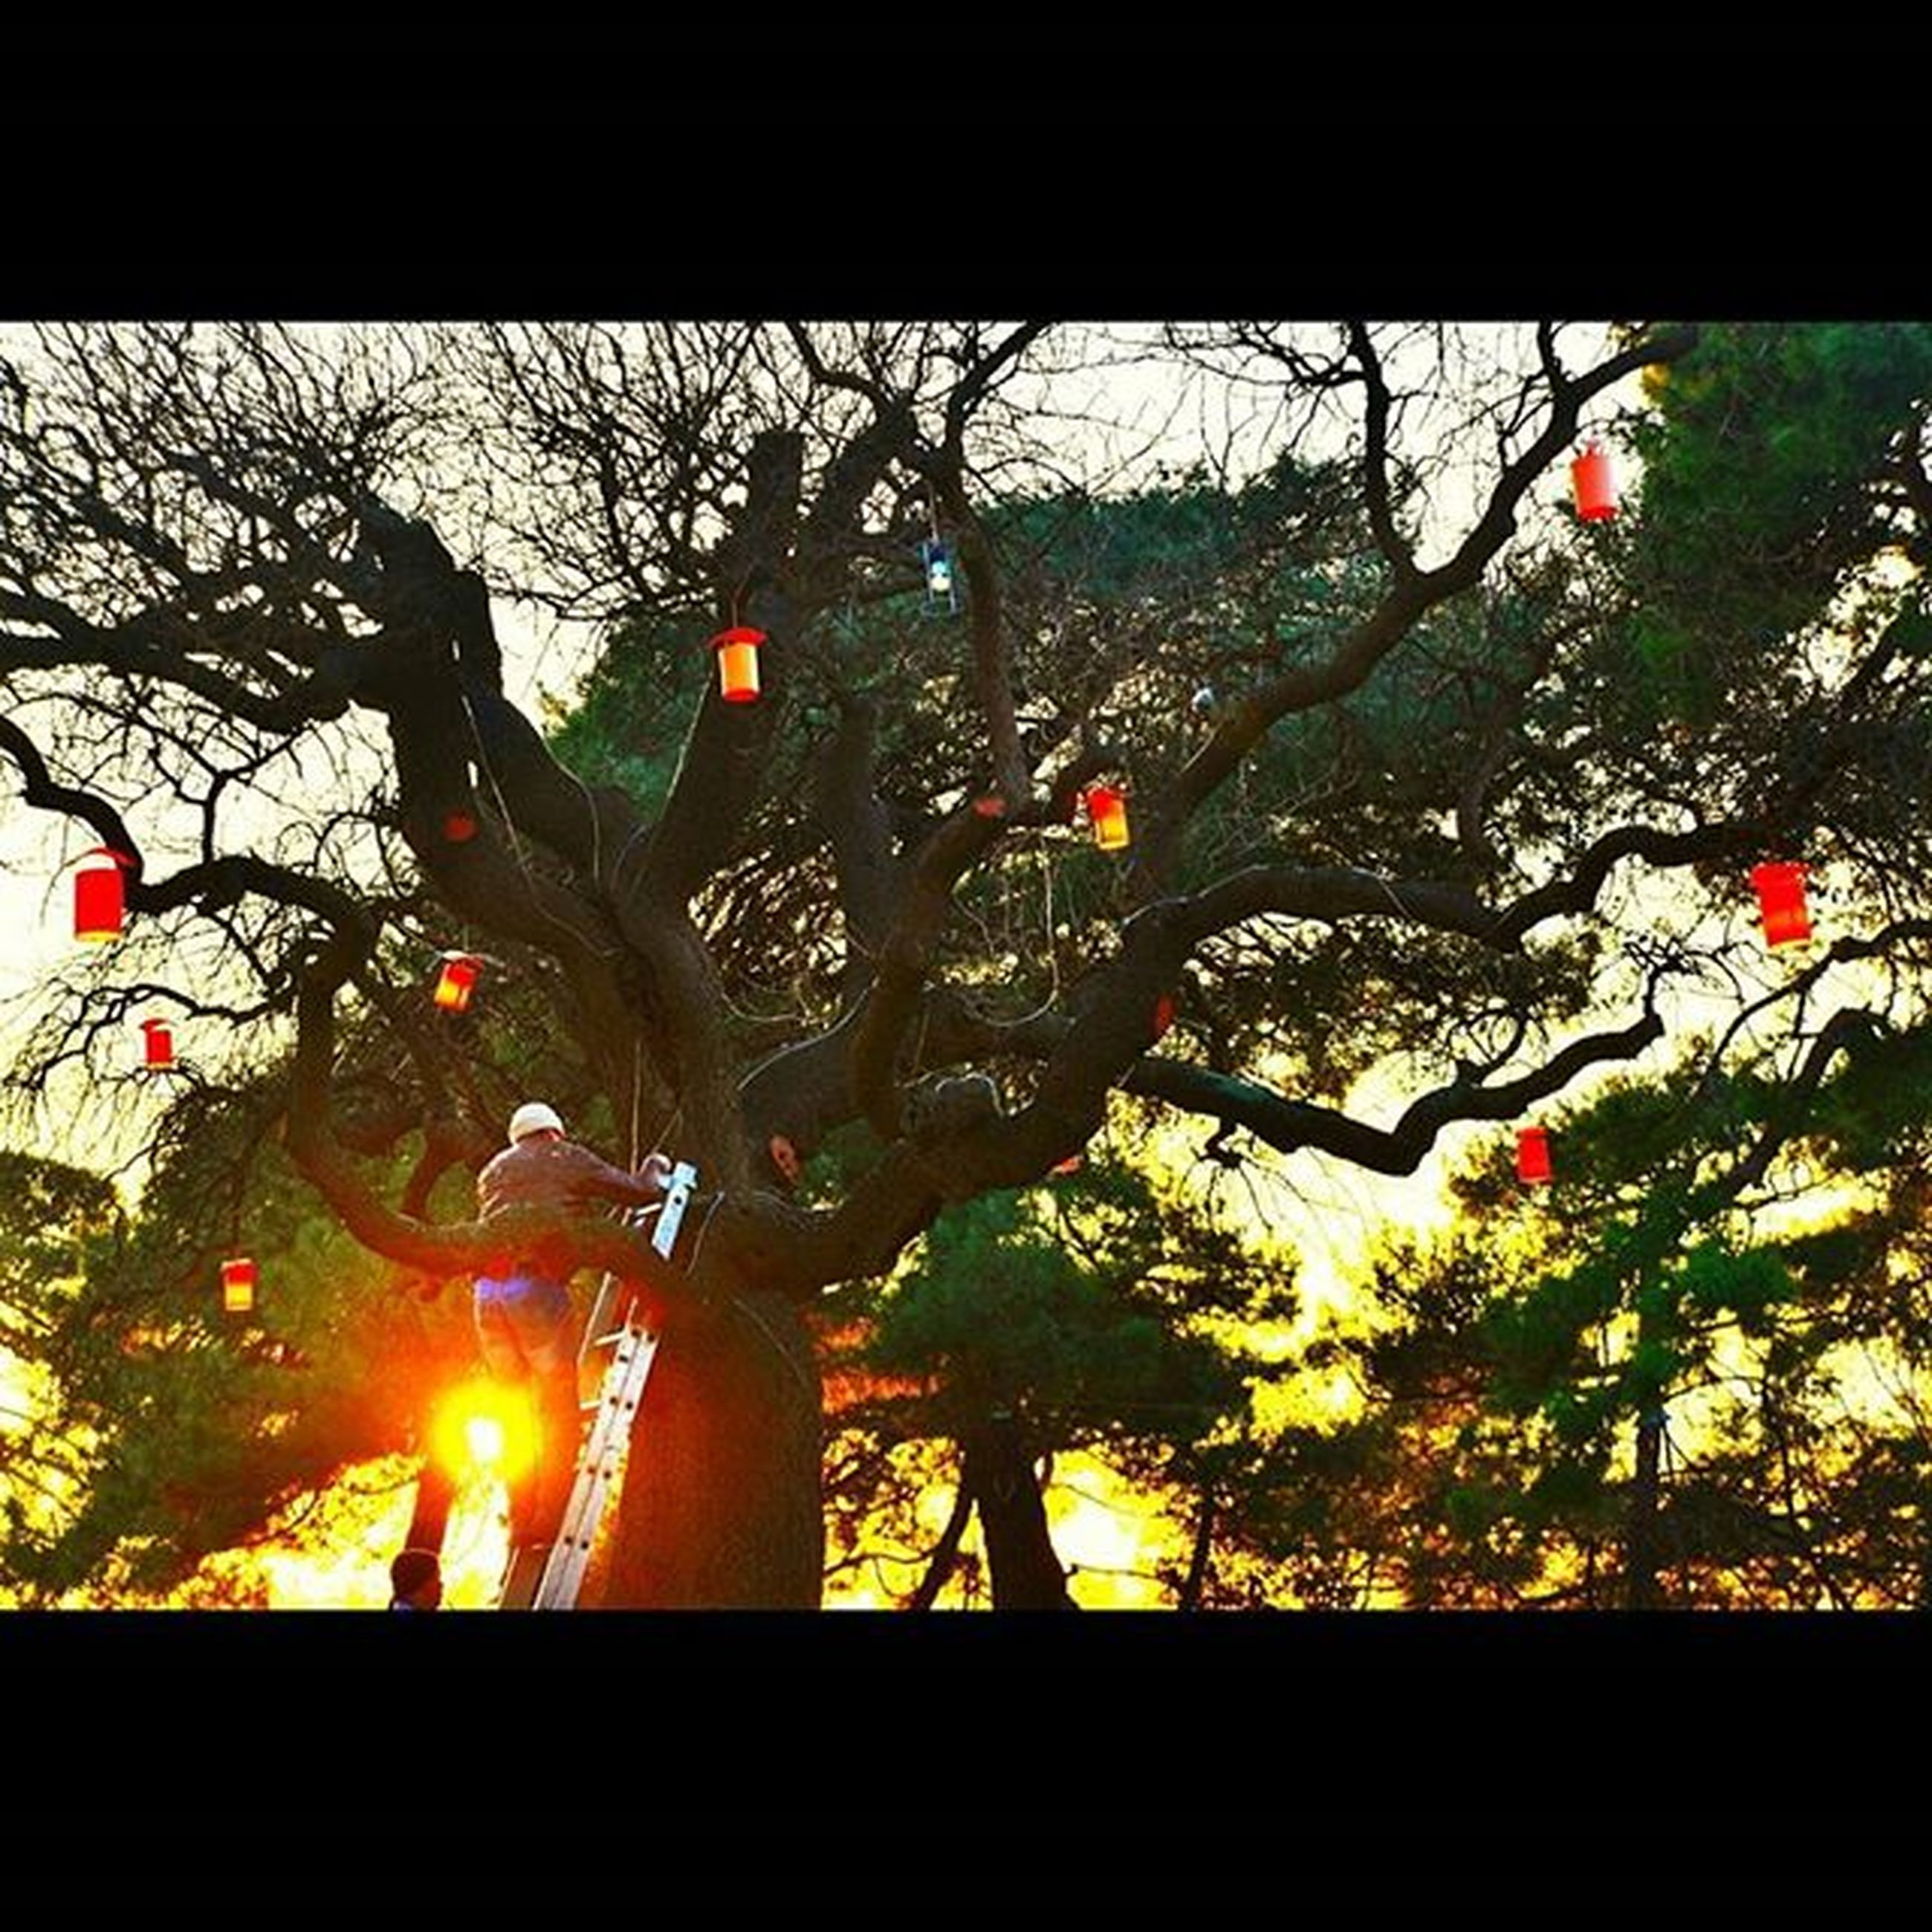 tree, transfer print, growth, branch, silhouette, auto post production filter, sunlight, nature, plant, sunset, no people, outdoors, fence, red, sky, close-up, park - man made space, orange color, low angle view, day